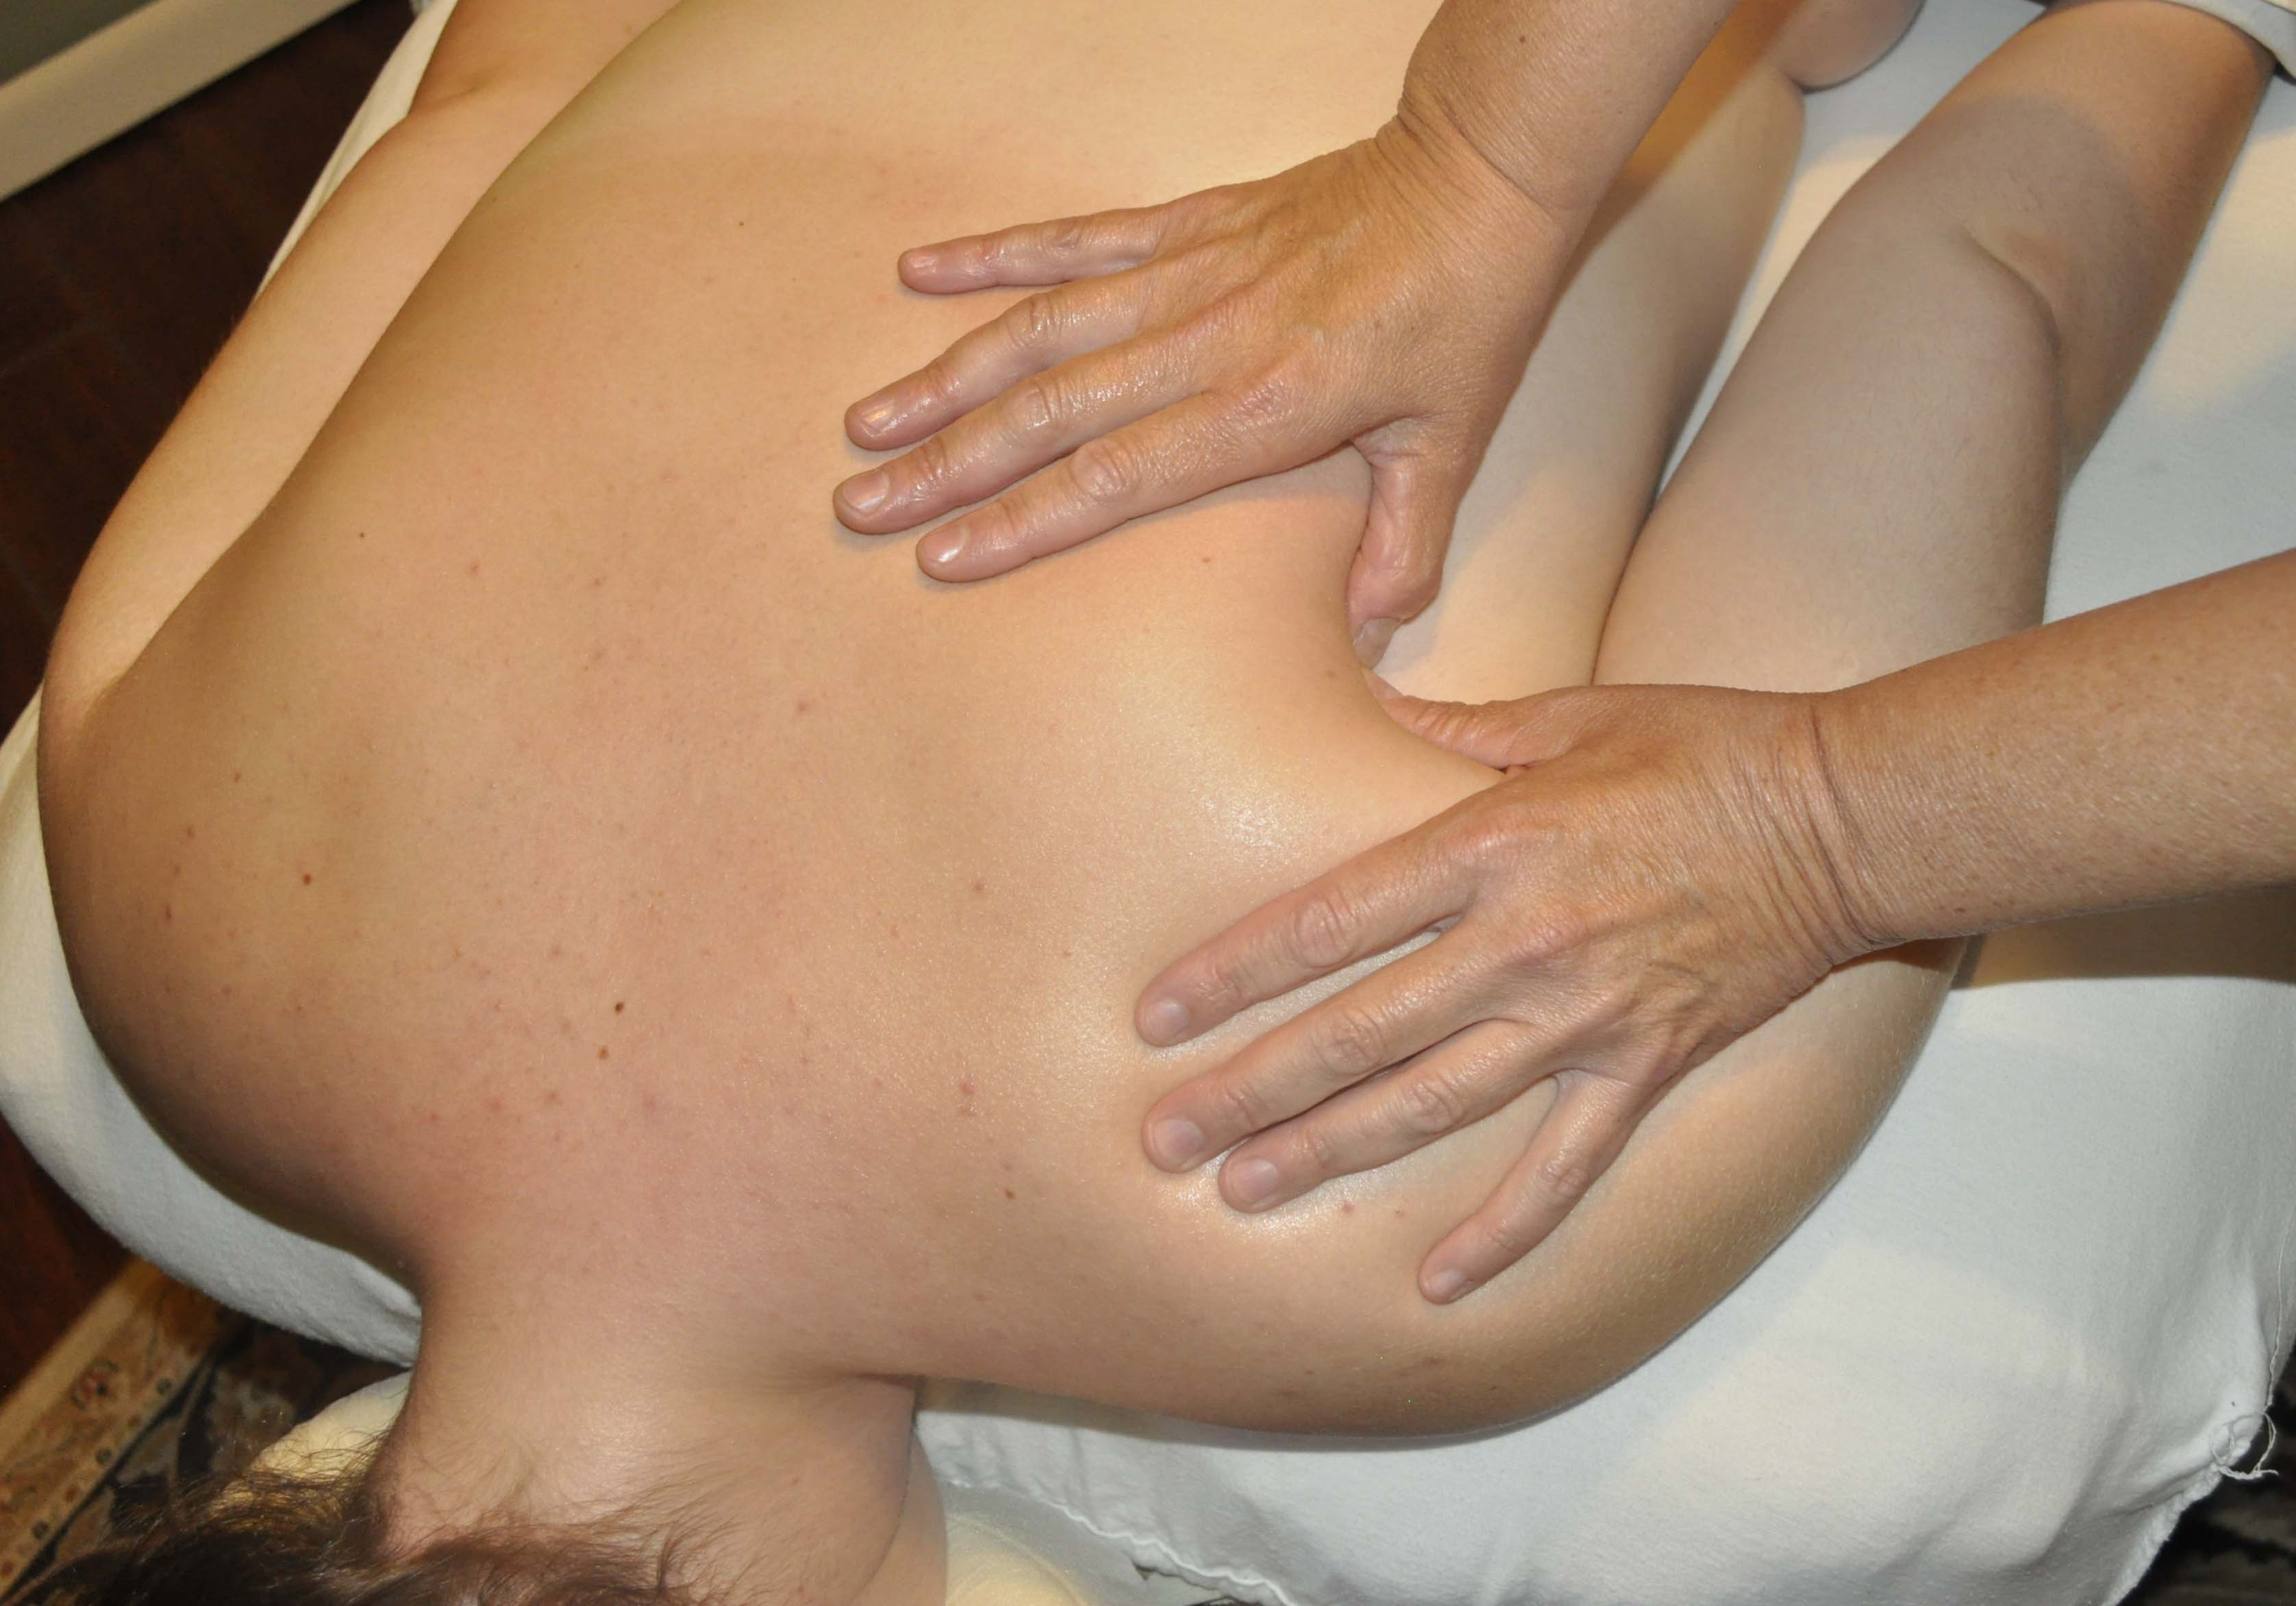 Where Can I Get Full Body Massage Full Body Massage Video Clip